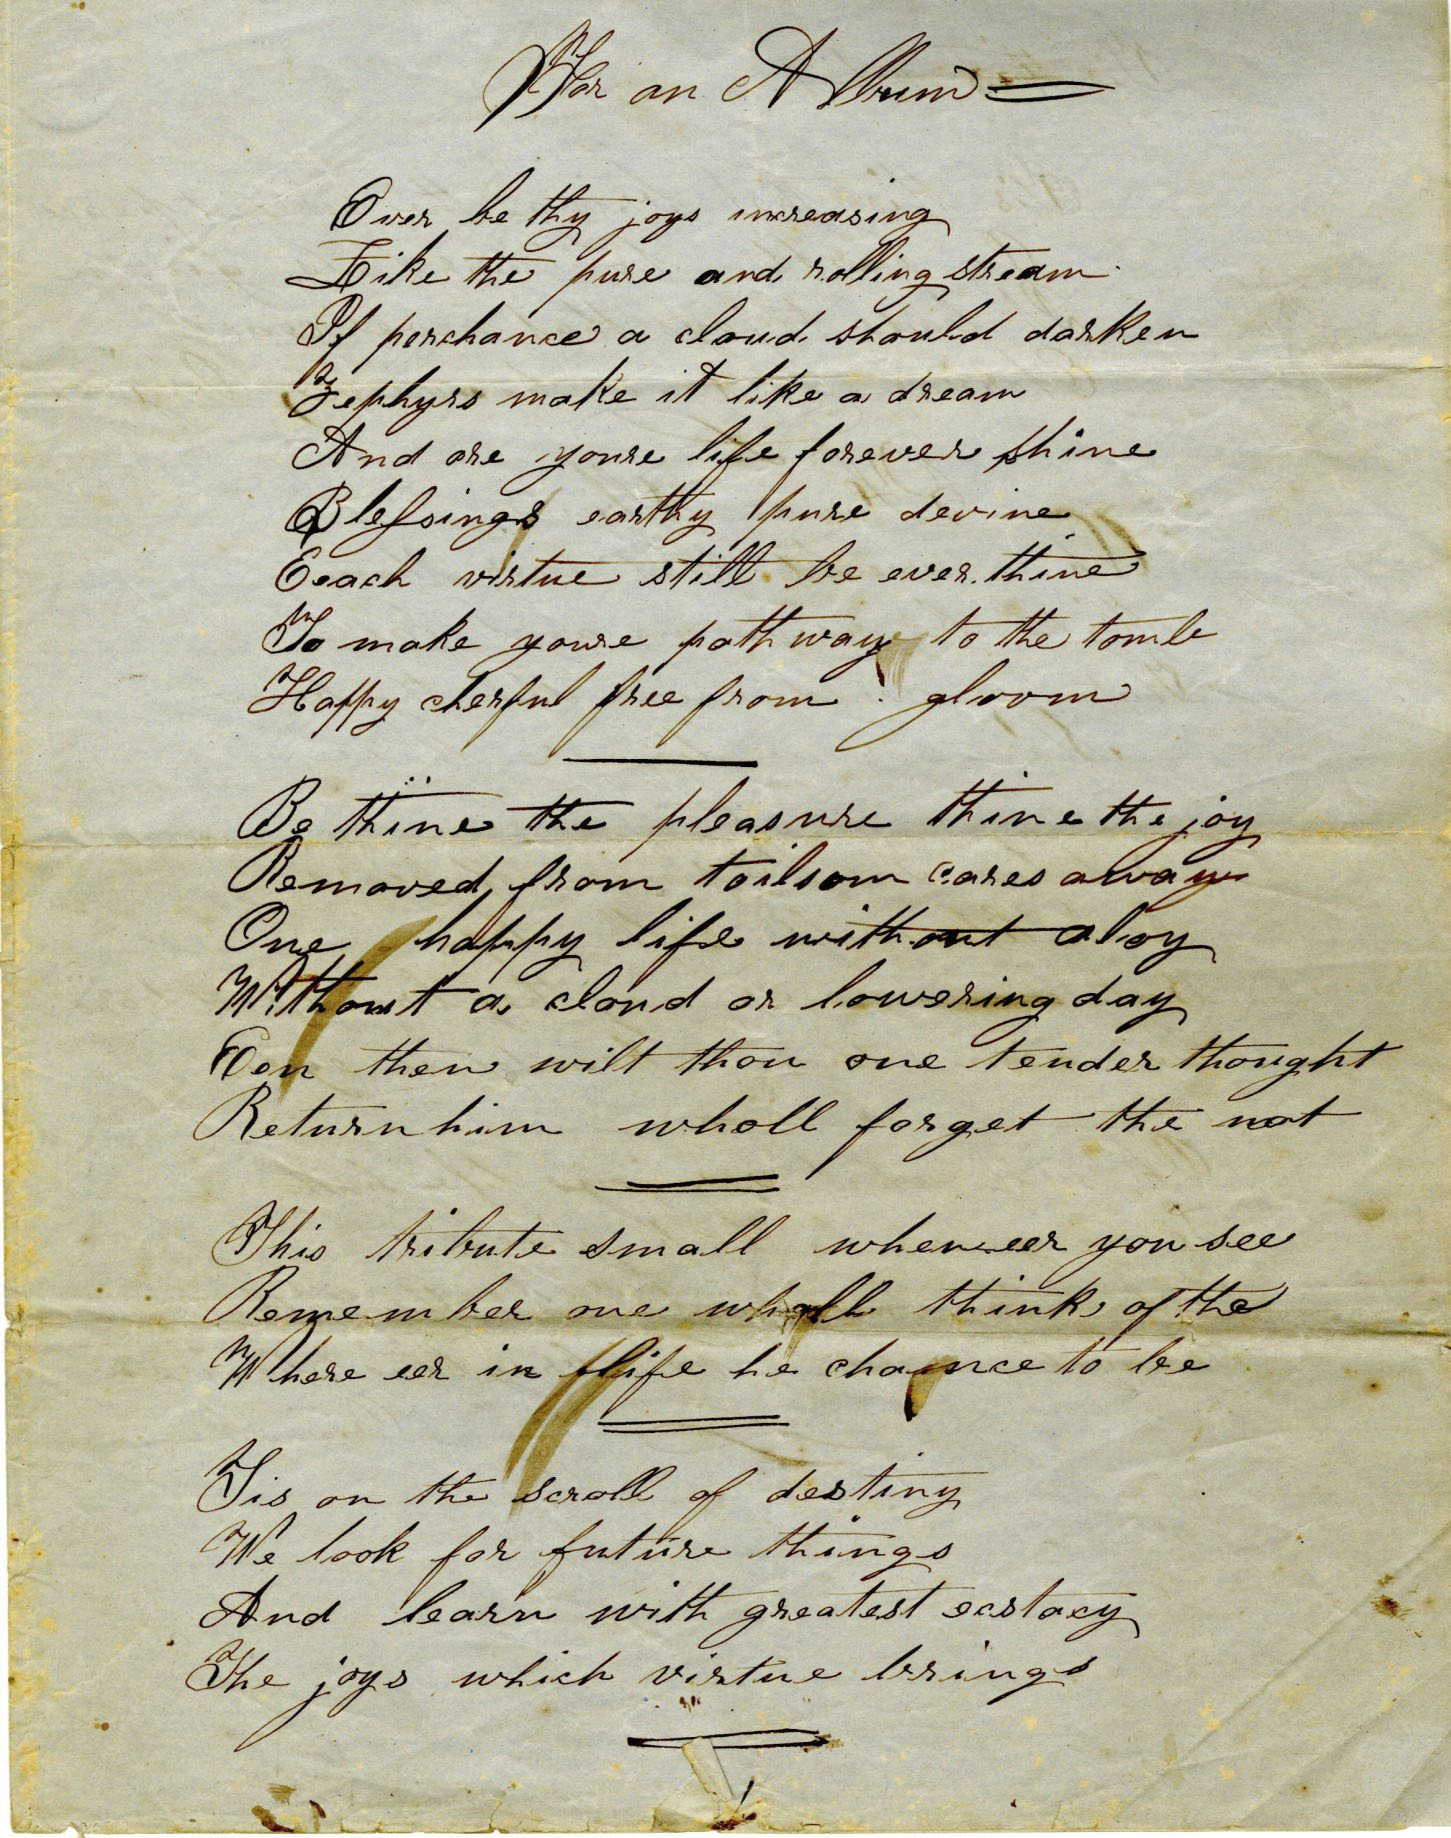 """For an Album,"" Poetry written by William Carson Stewart Thompson"